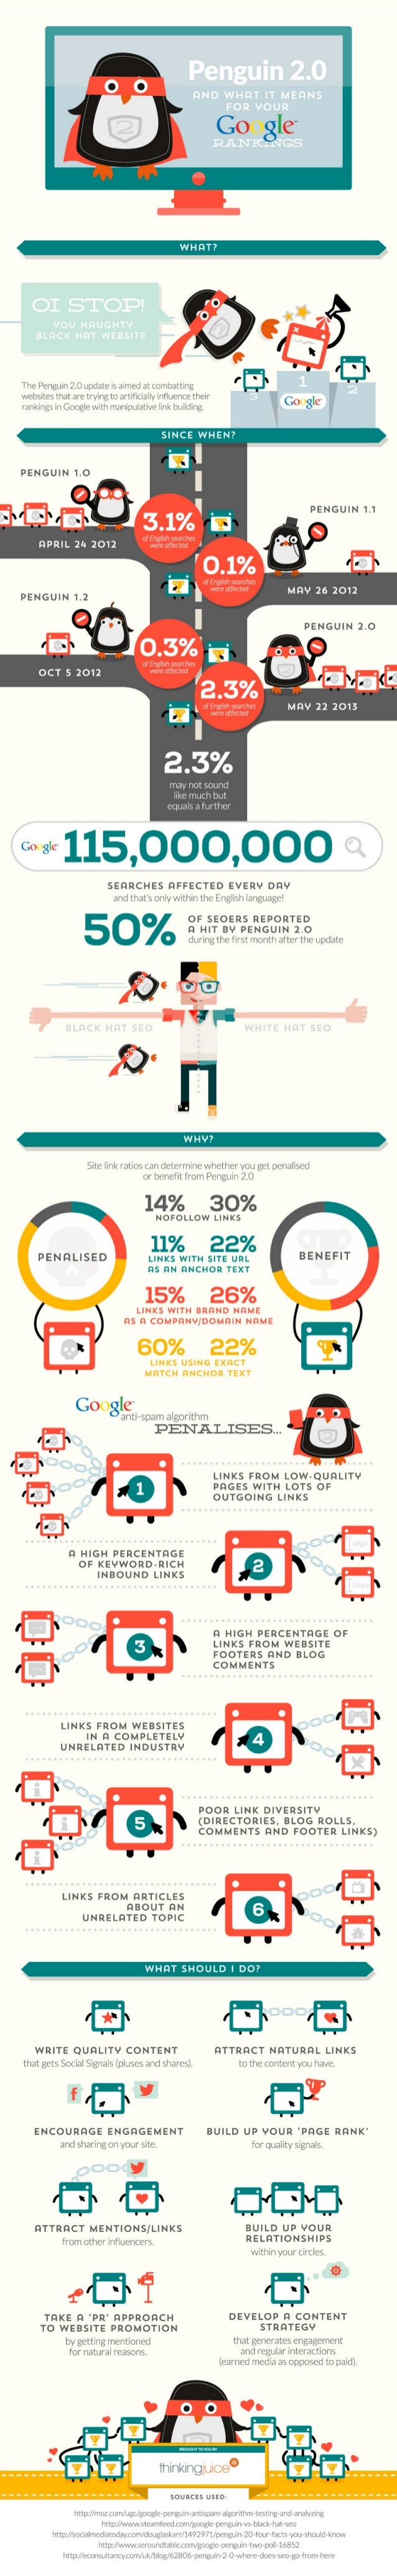 The Penguin 2.0 and What It Means For Your Google Ranking